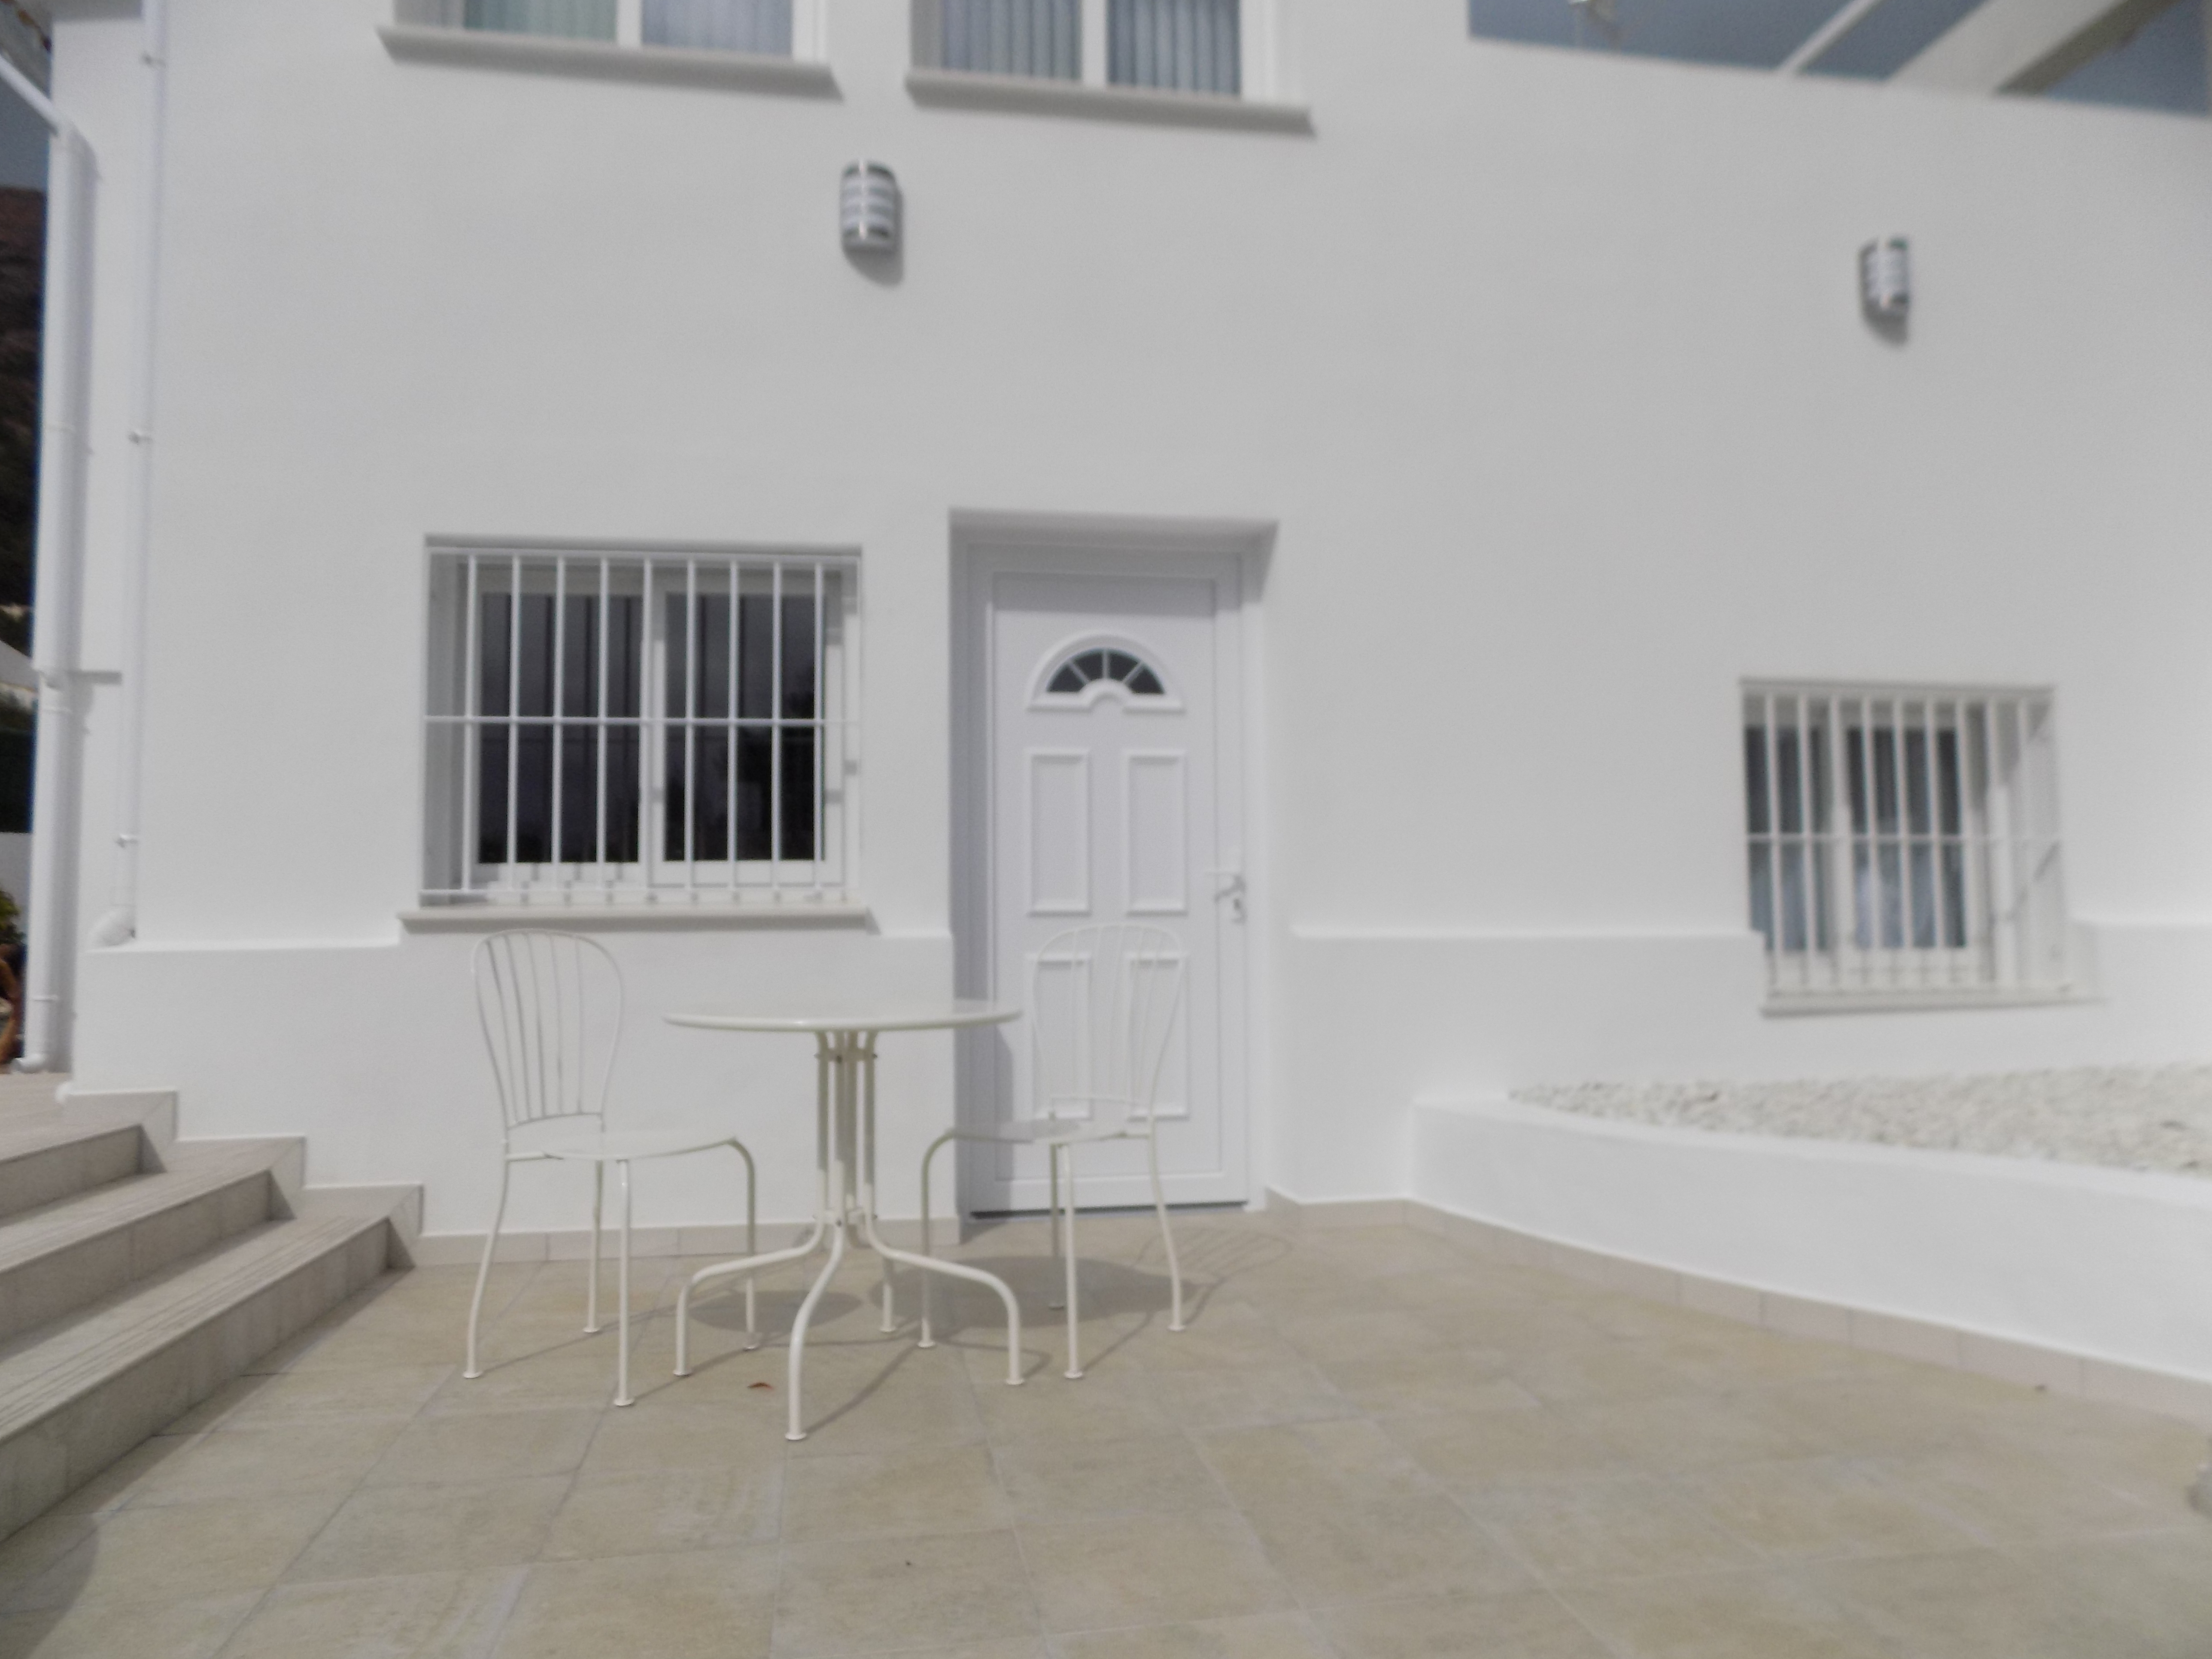 Apartment, quiet, self contained, pool - Apartments for Rent in ...